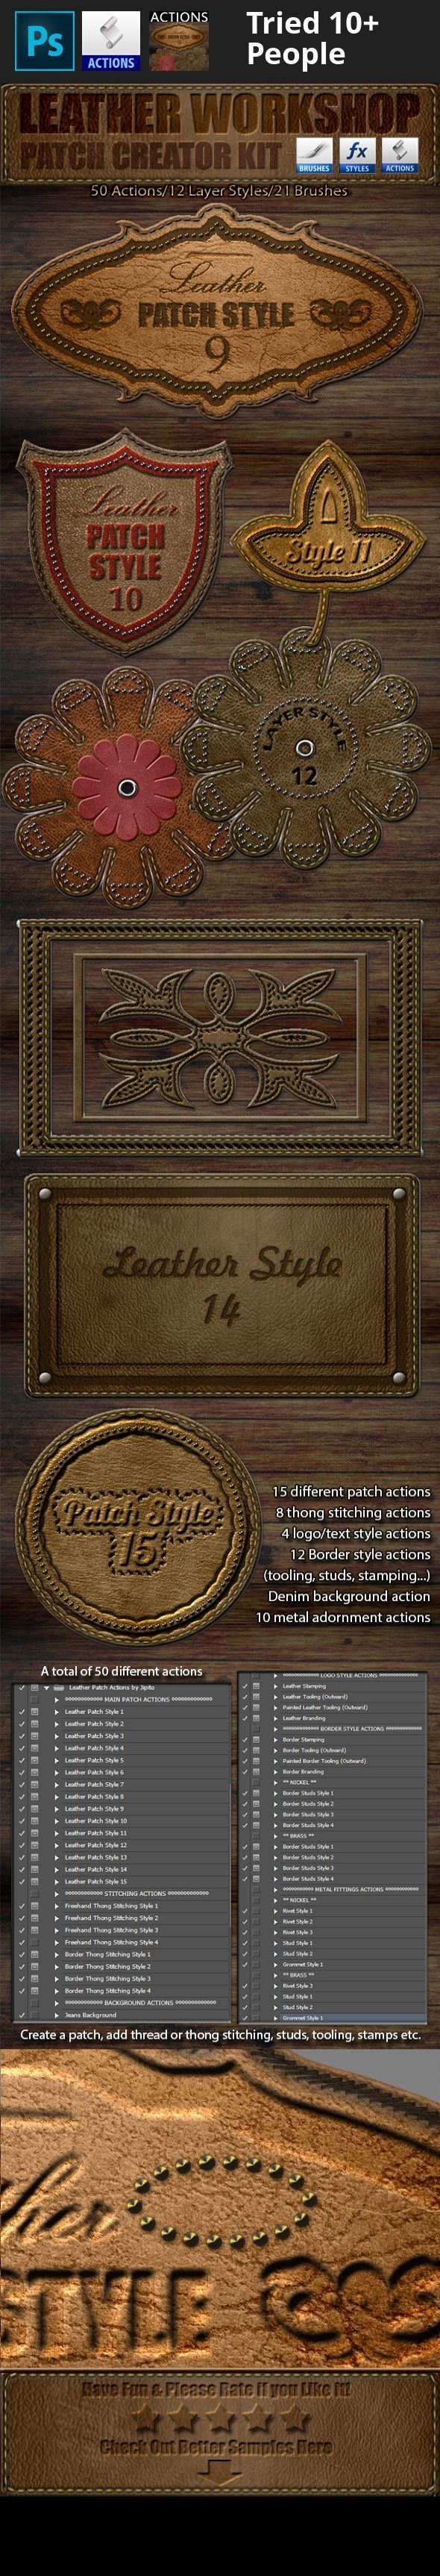 action, art, border, brush, clip, craft, creator, denim, distort, easy, edit, editable, frame, leather, logo, maker, manual, patch, pattern, photoshop, sew, sewing, shadow, stitch, stitched, stitching, style, suede, text Choose a custom shape and create a leather patch using one of 15 leather style actions, then use the other actions to stitch it using thong or thread, add stud designs, enter your text/logo with a stamped, tooled, painted or branded effect.   Features:  2000×1200 px. ...